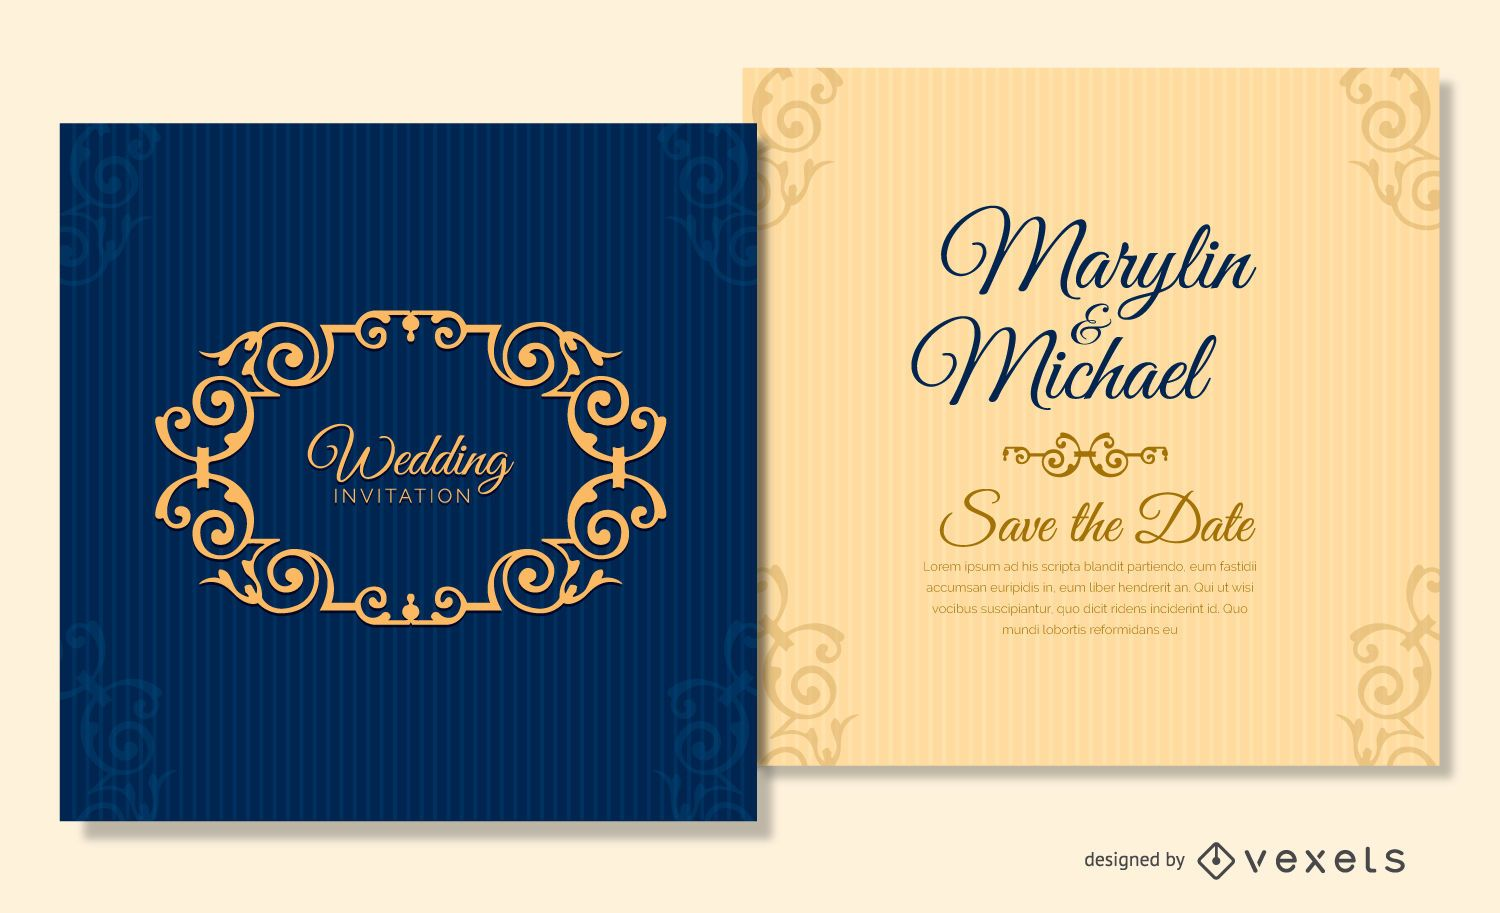 navy blue wedding card template  vector download, Wedding invitation